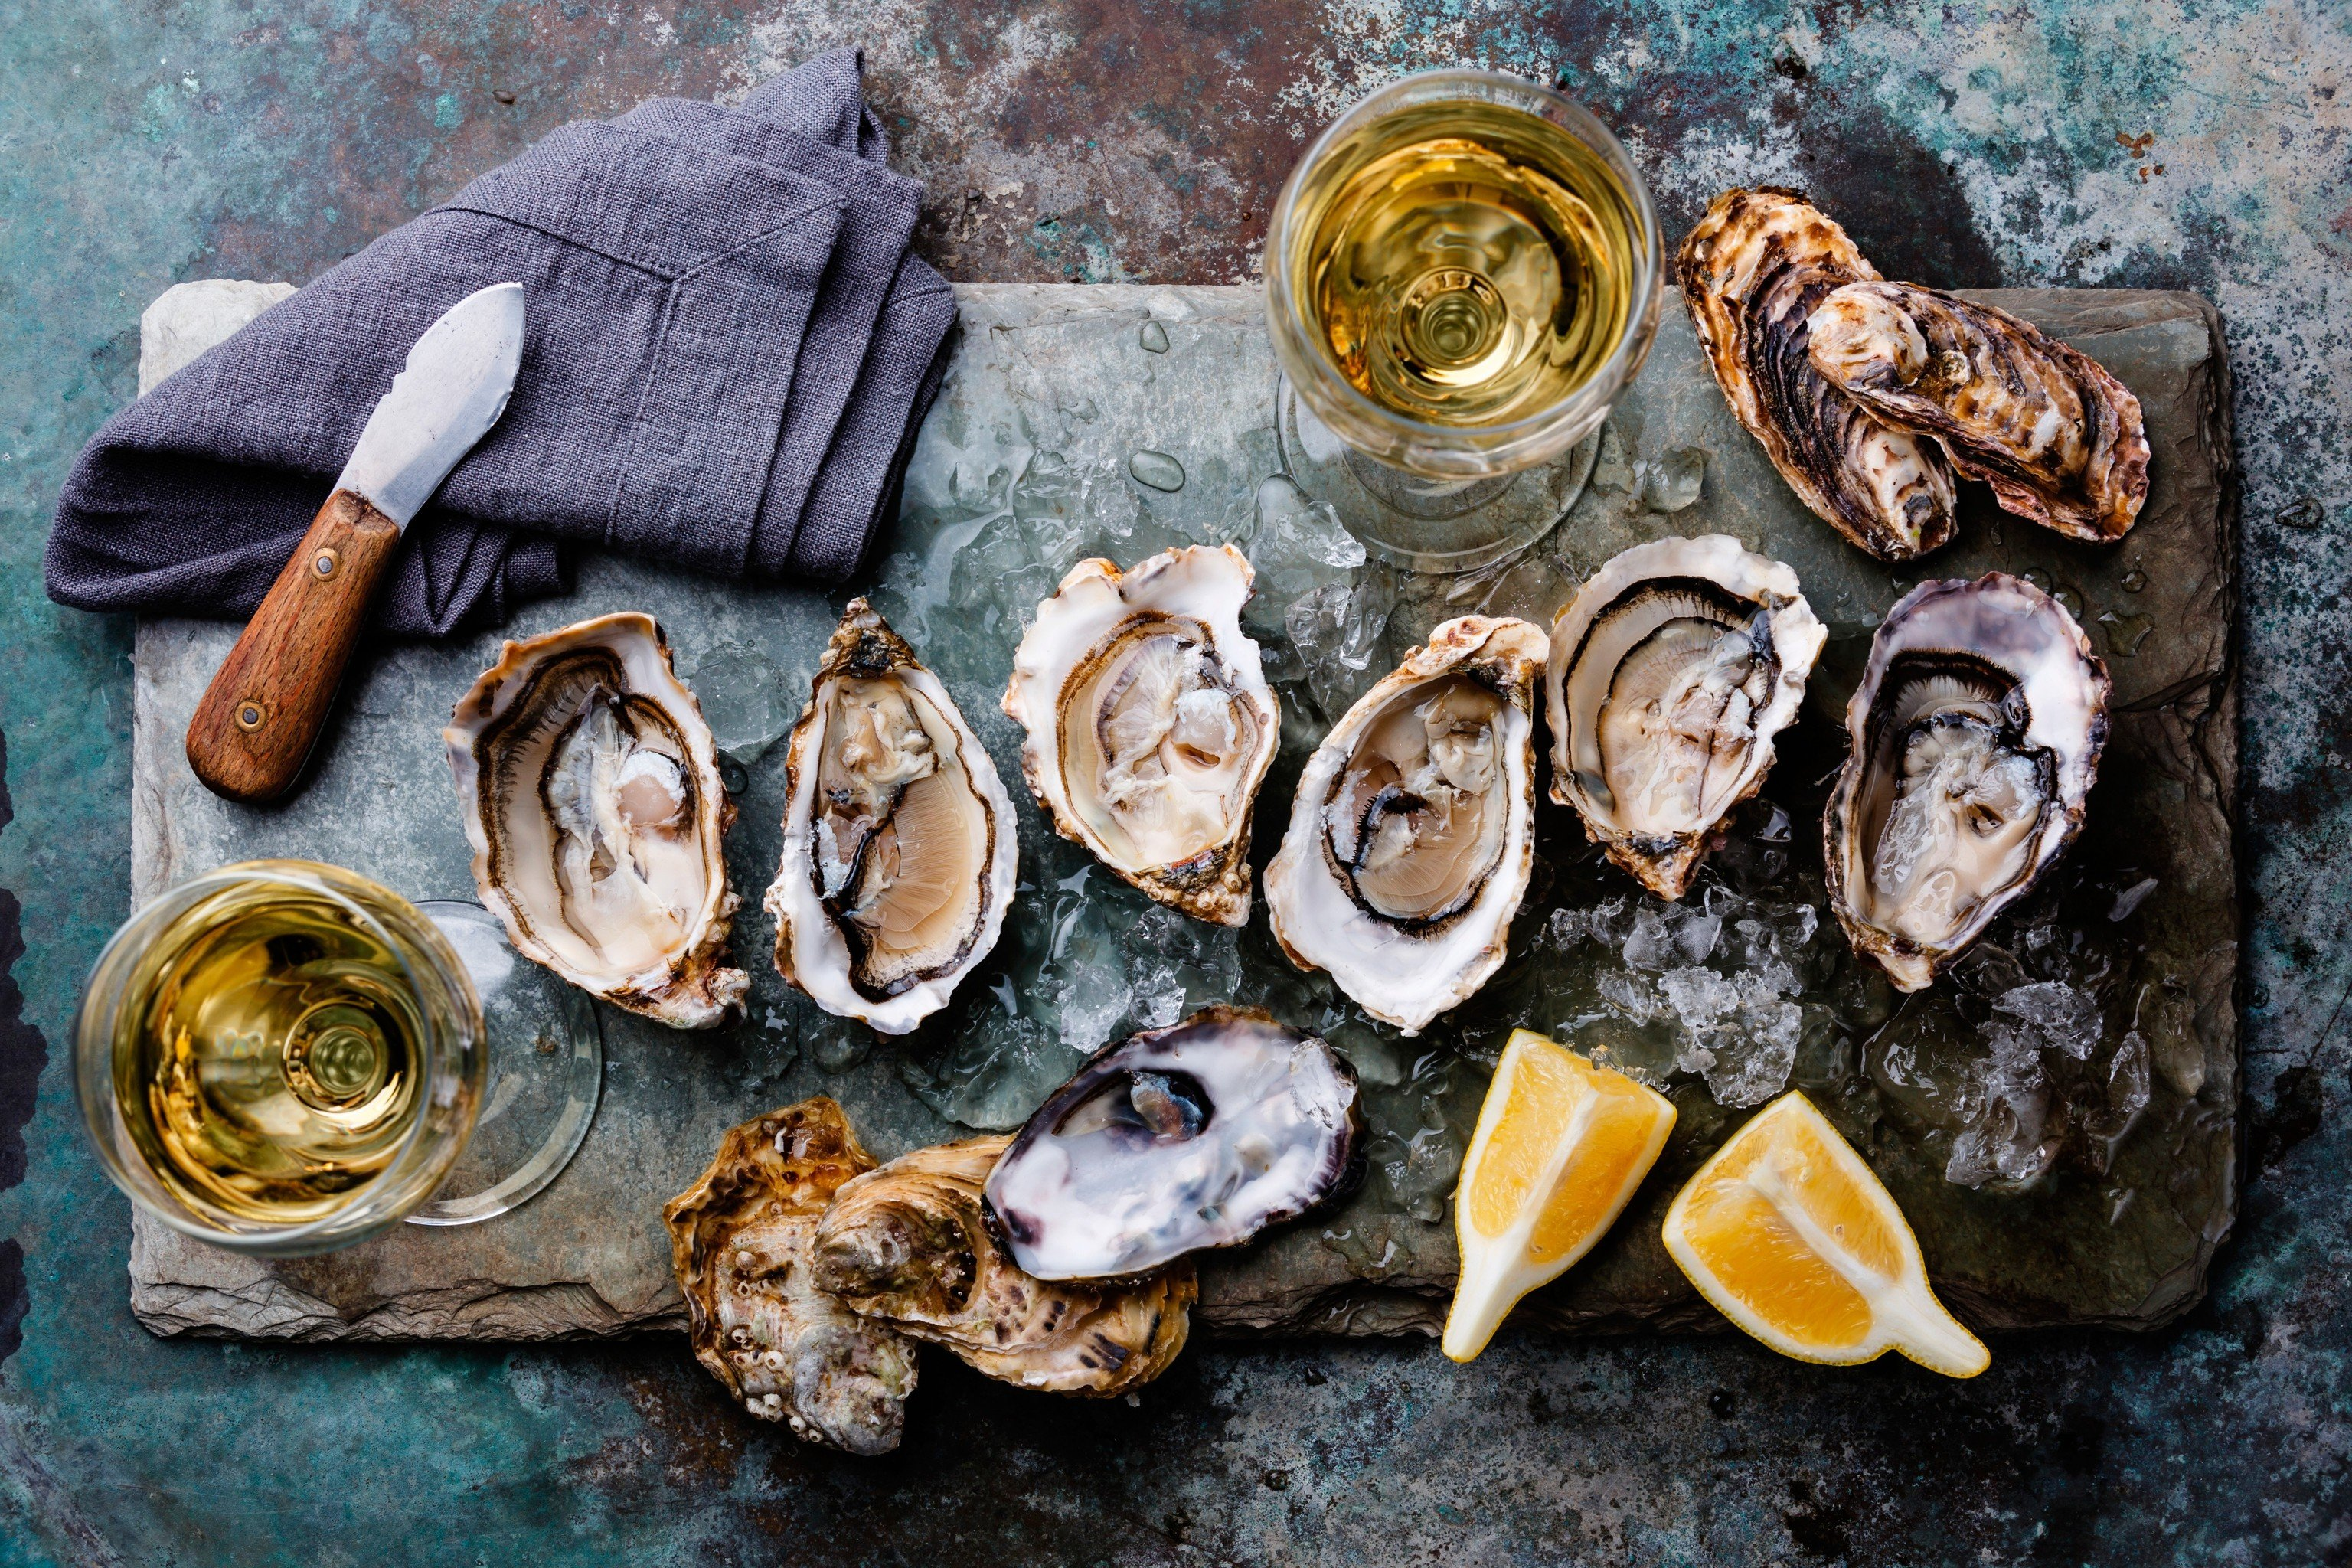 Jetsetter Guides food Seafood painting wood invertebrate still life carving material clams oysters mussels and scallops several